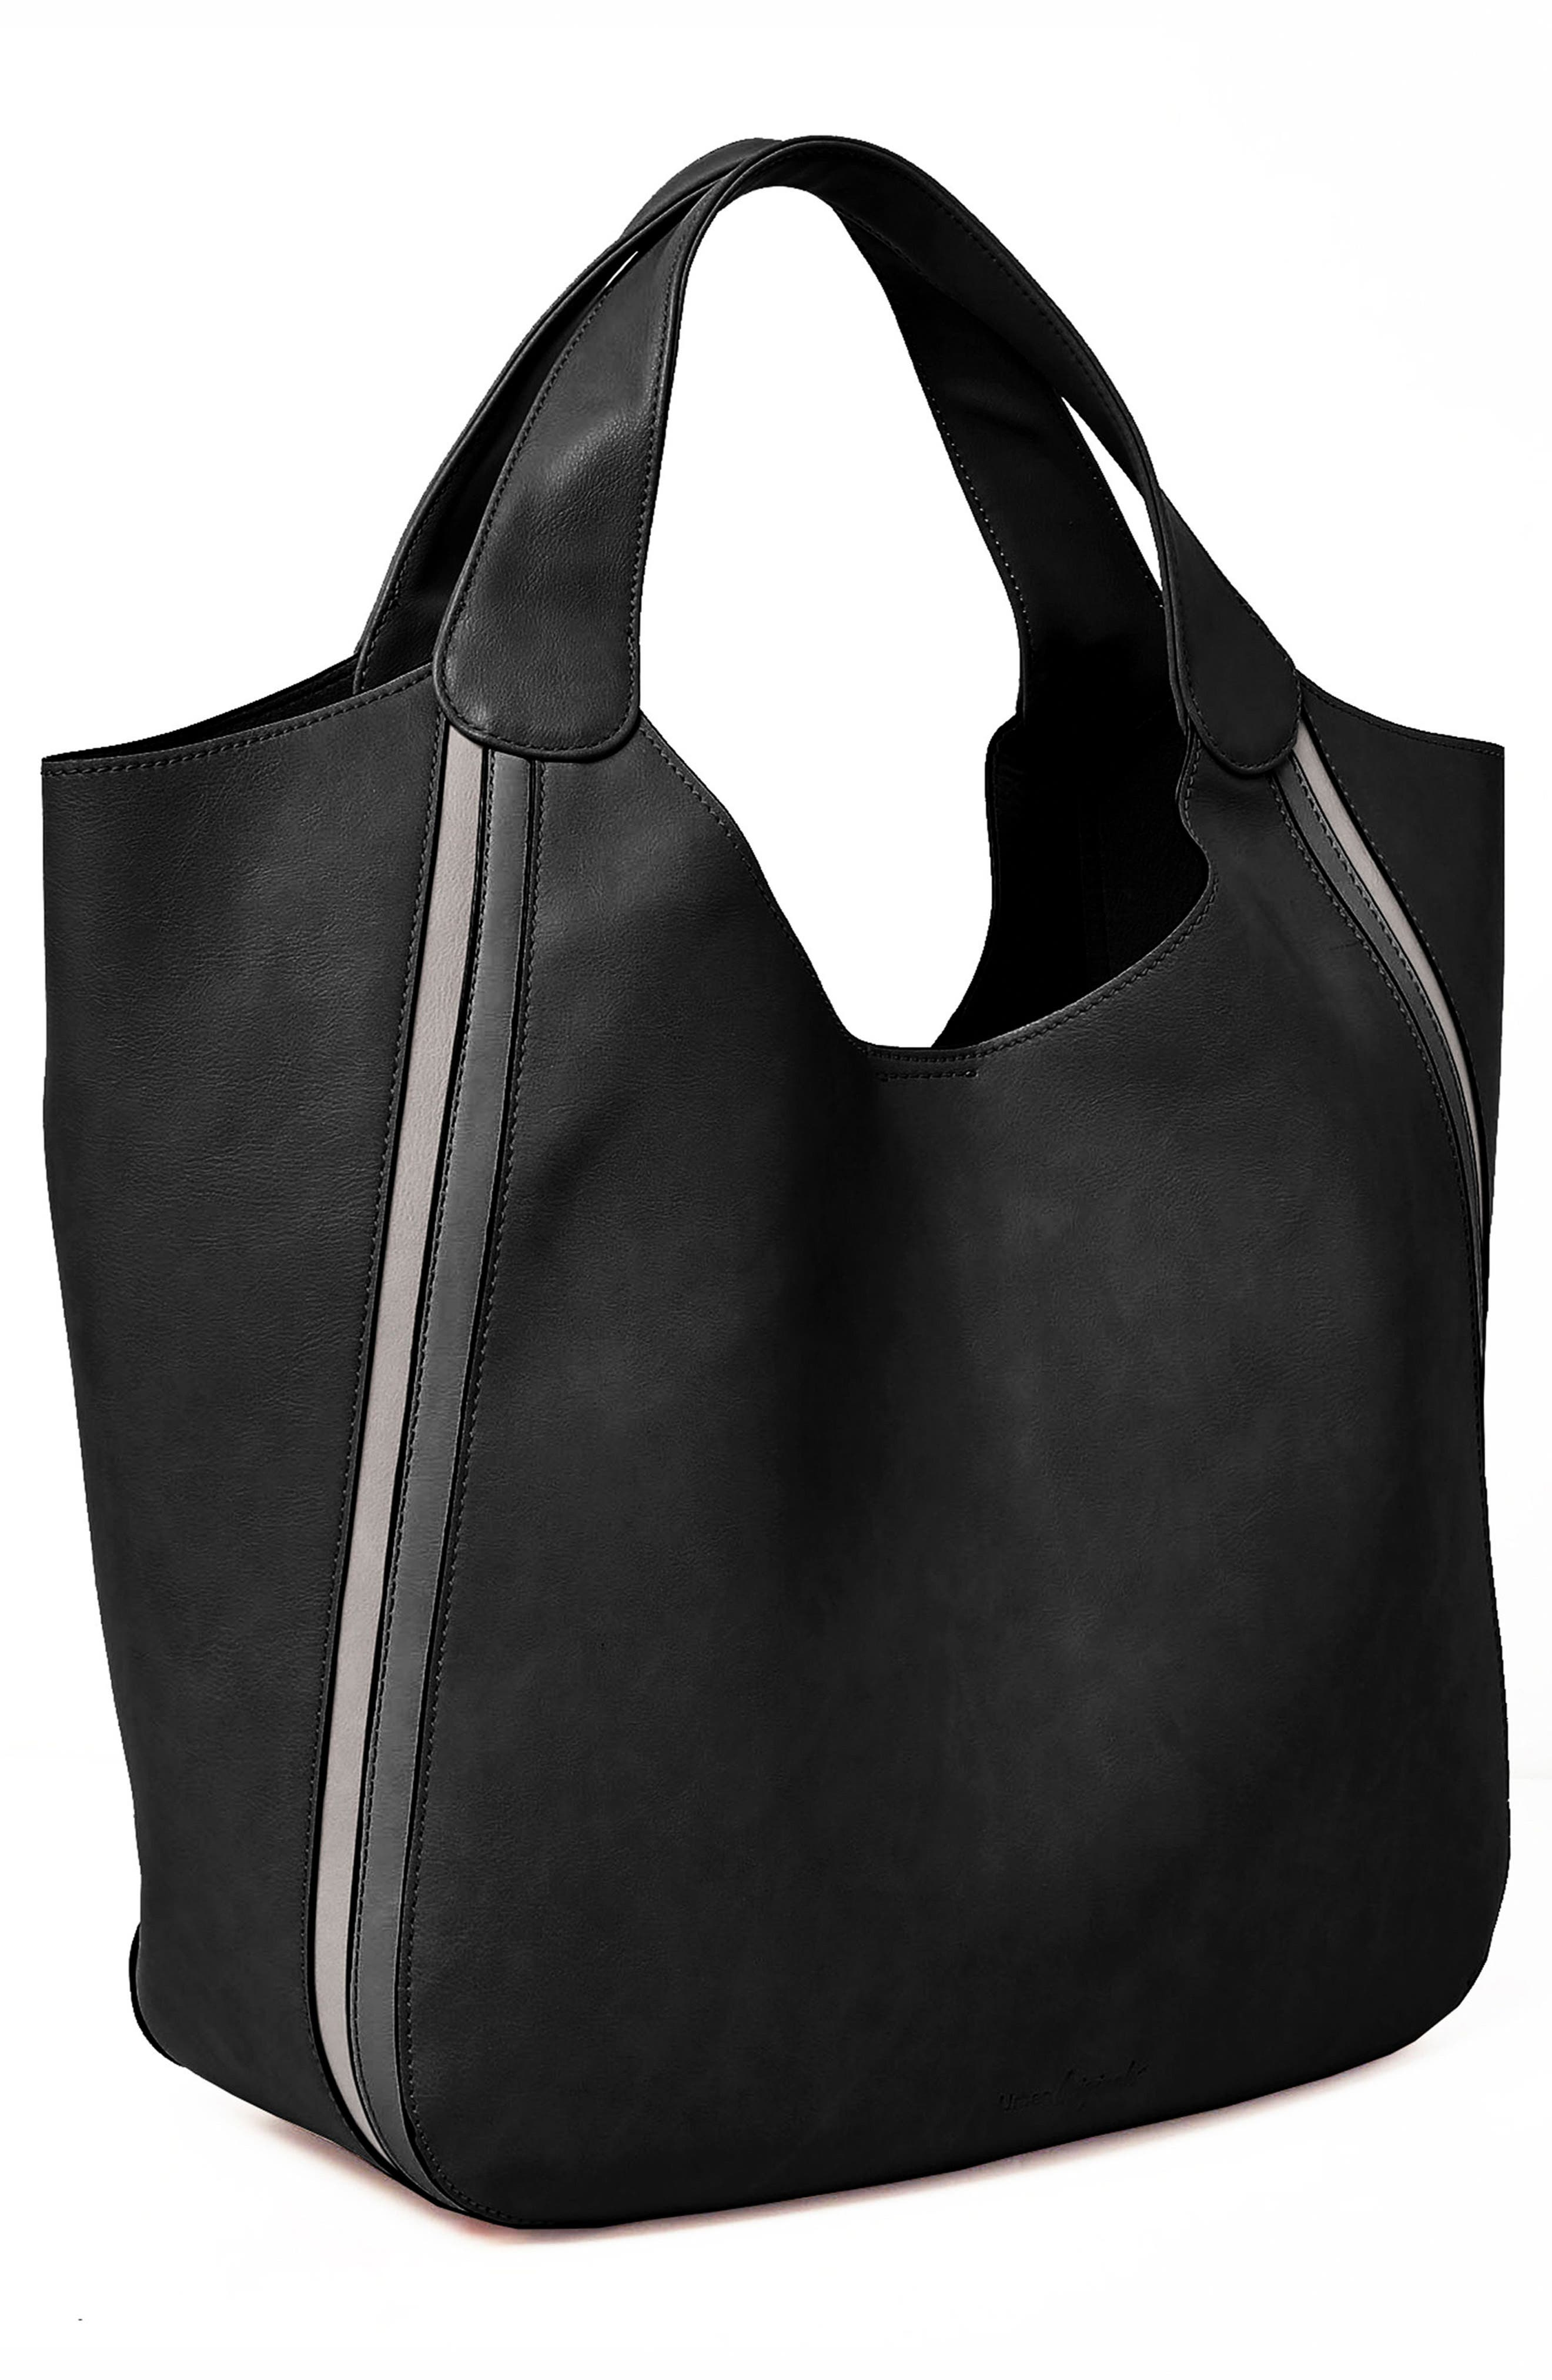 Viva Vegan Leather Tote with Removable Zip Pouch,                             Alternate thumbnail 2, color,                             BLACK